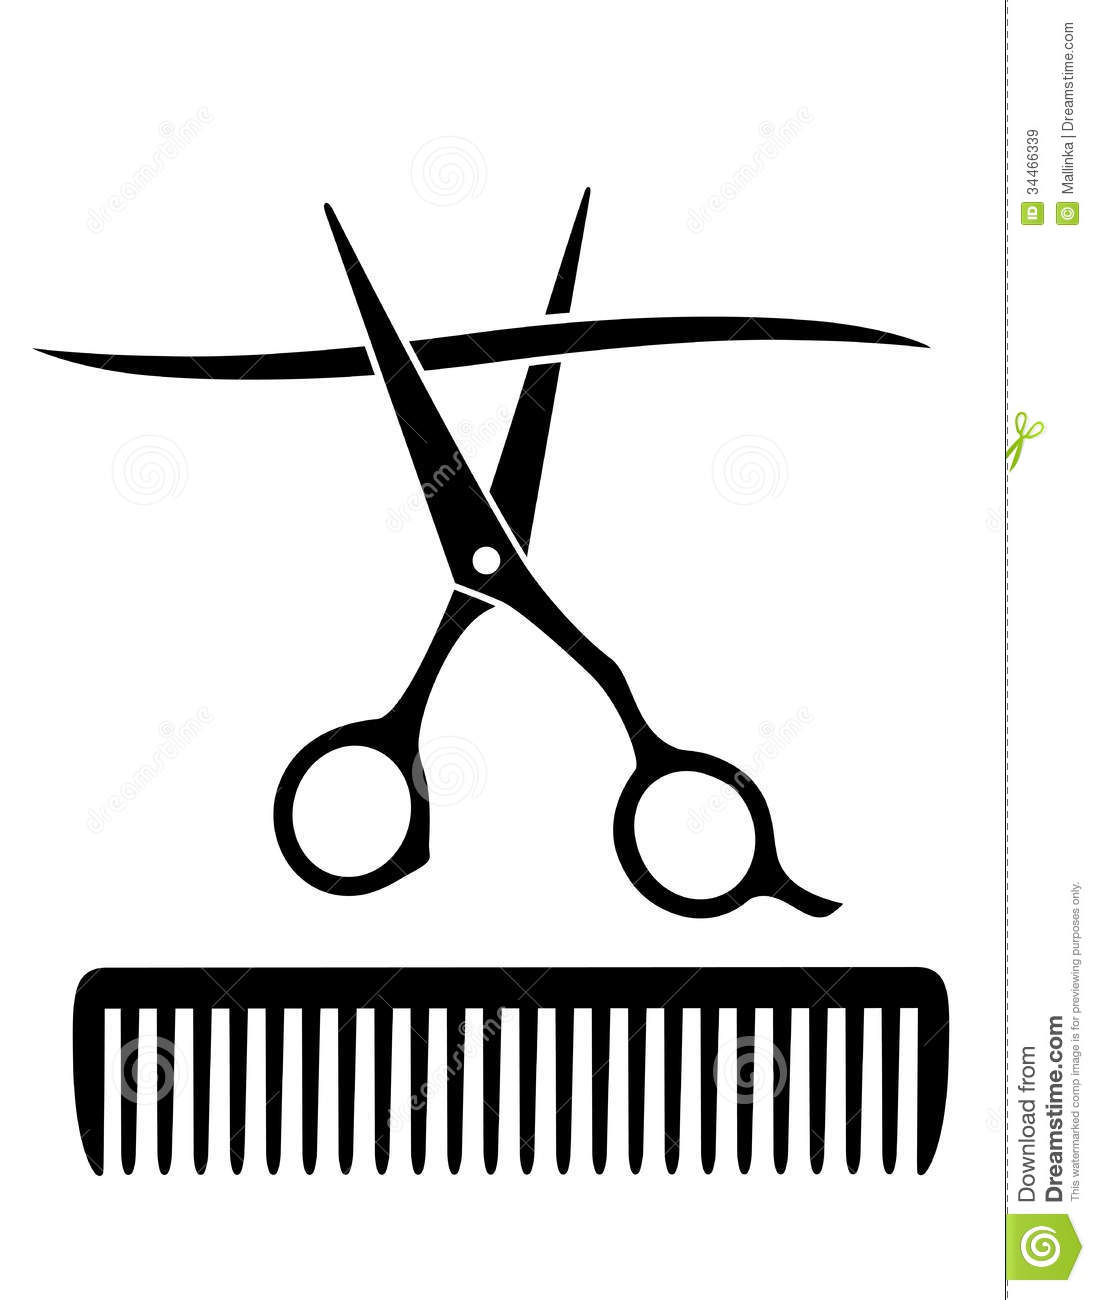 1095x1300 15 Comb Clipart Hairdressing Scissors For Free Download On